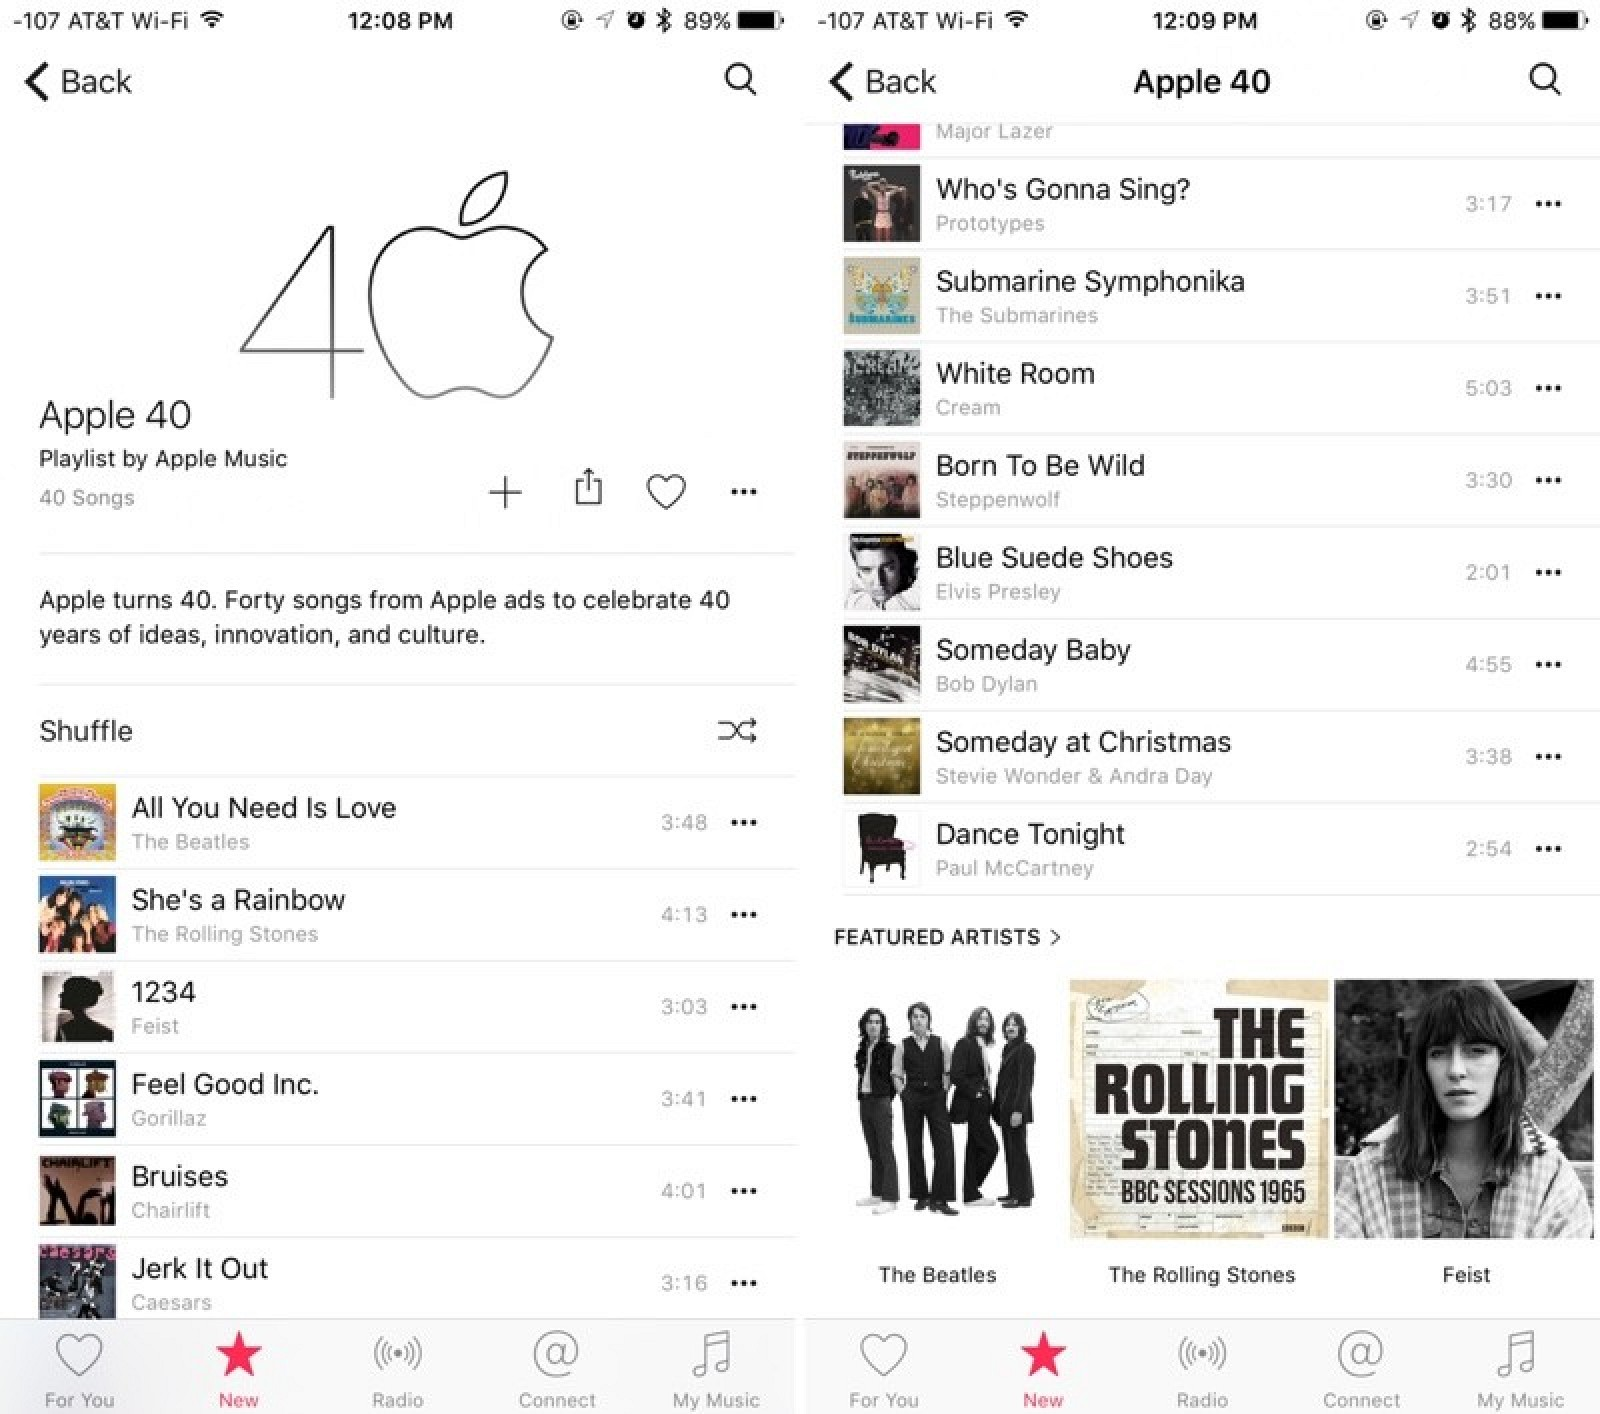 Apple Celebrates 40th Anniversary With Apple Music